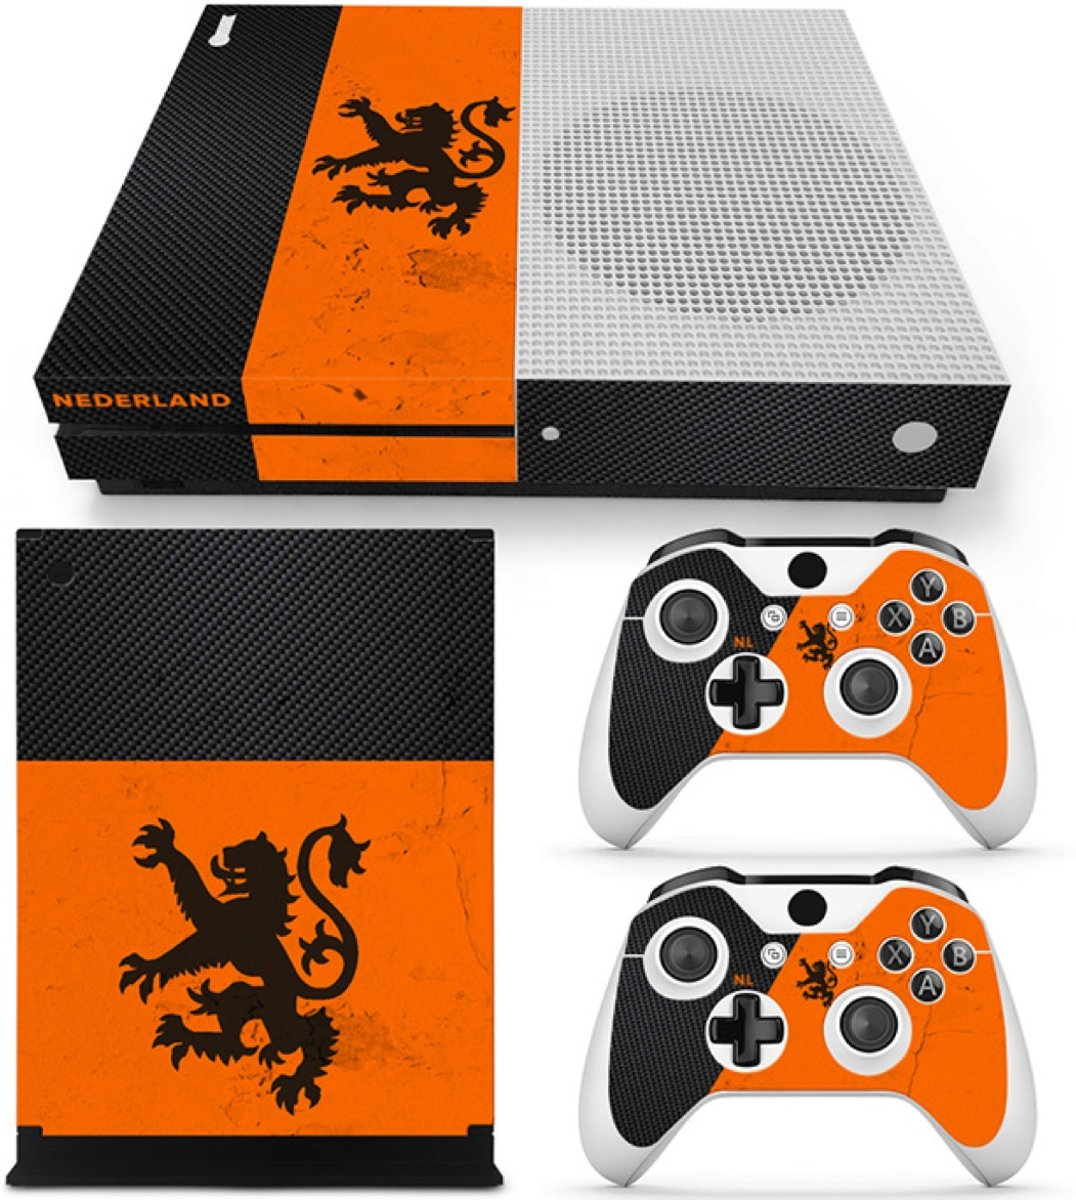 Nederland - Xbox One S Console Skins Stickers